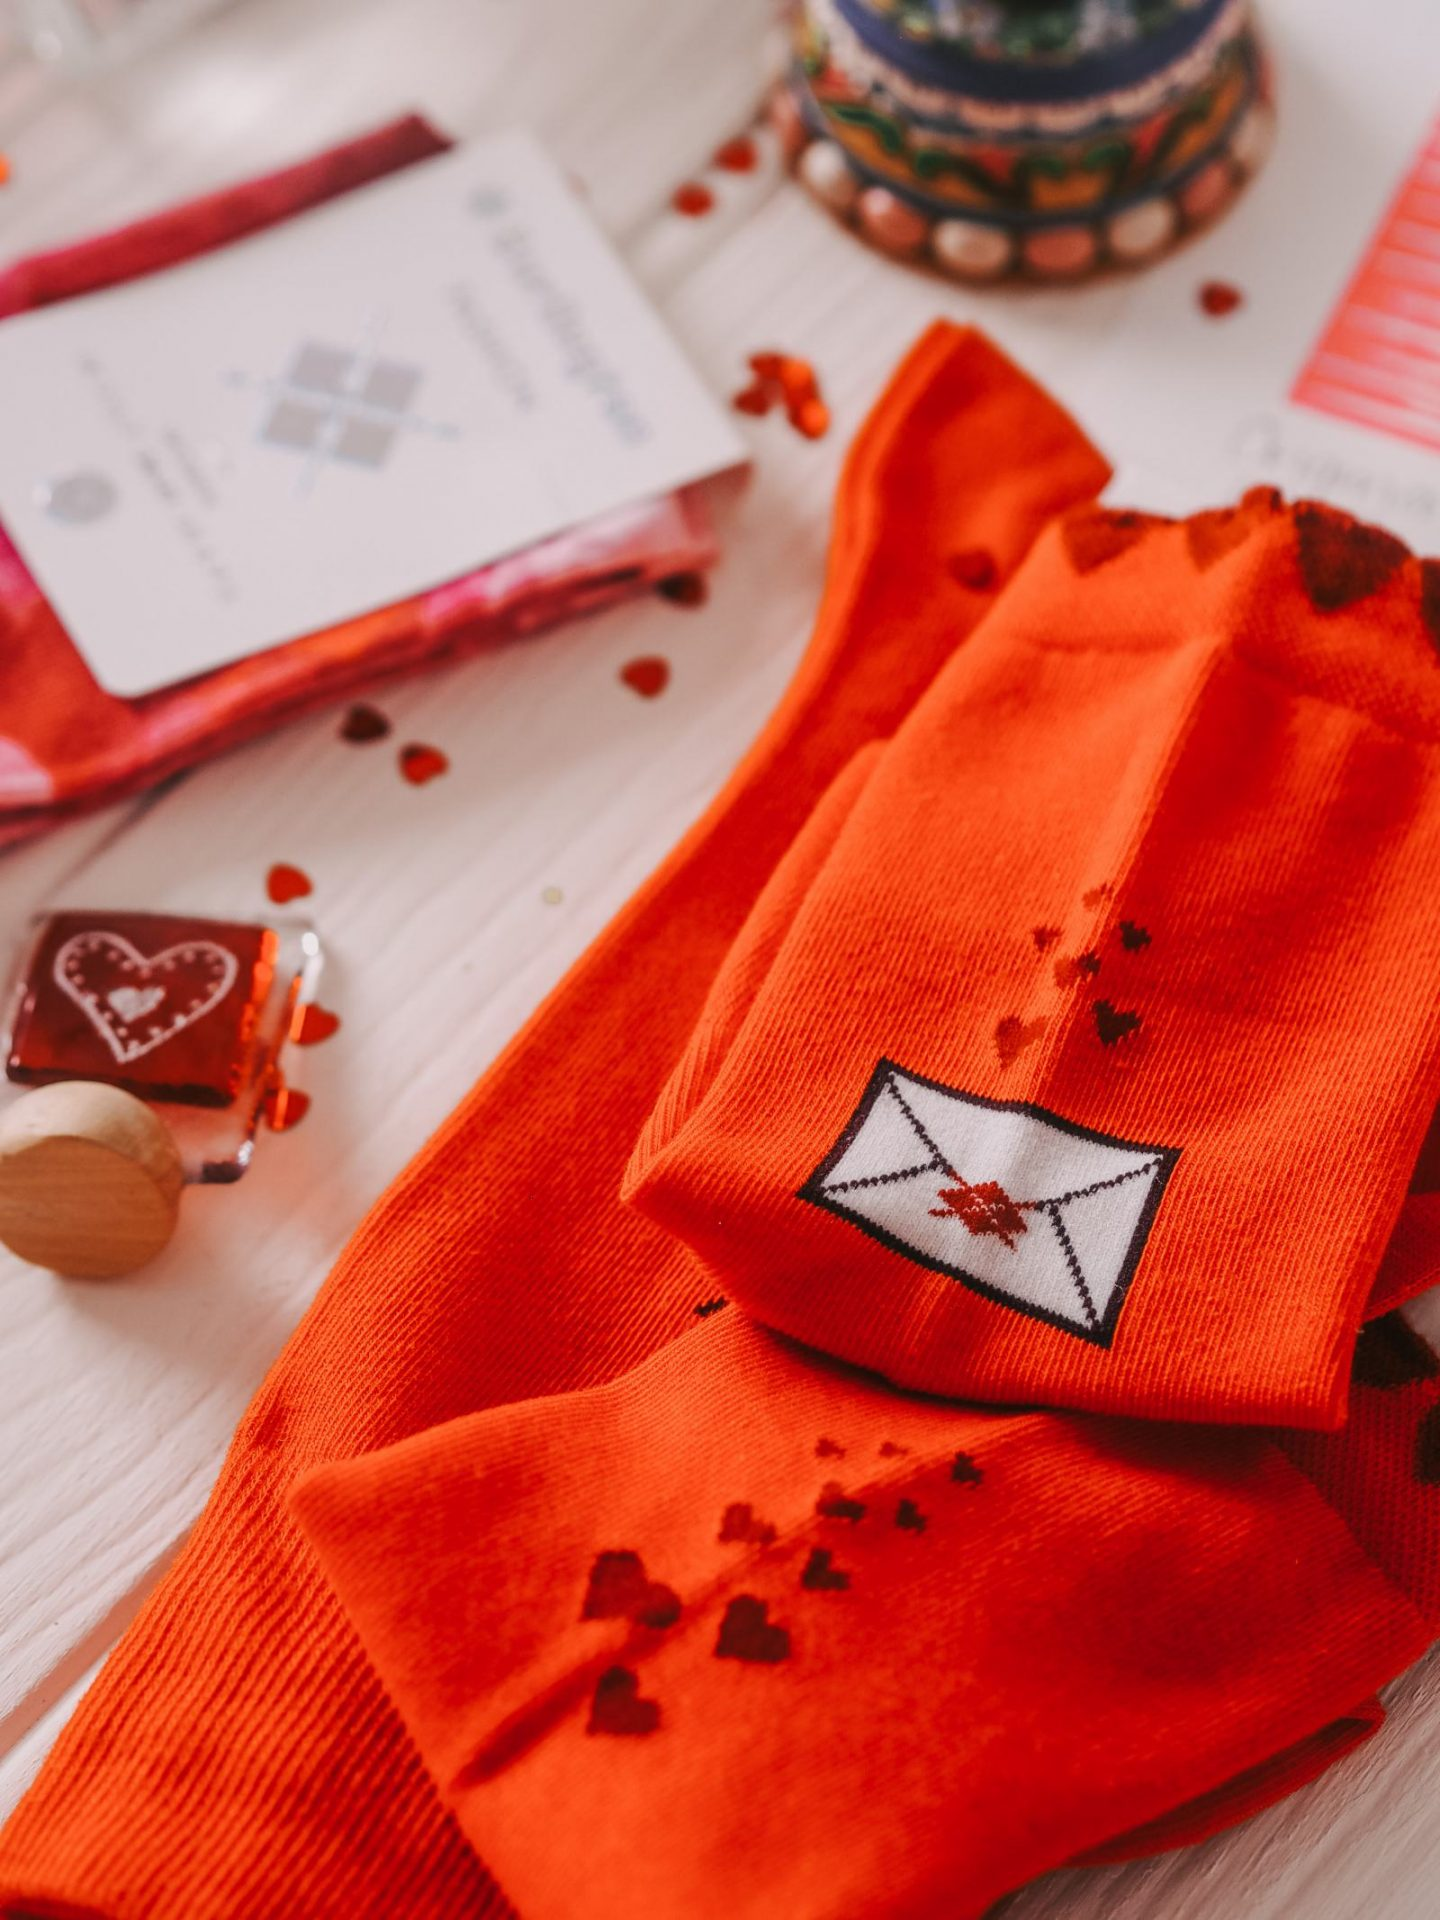 Valentine Gift Guide - Stay At Home Edition